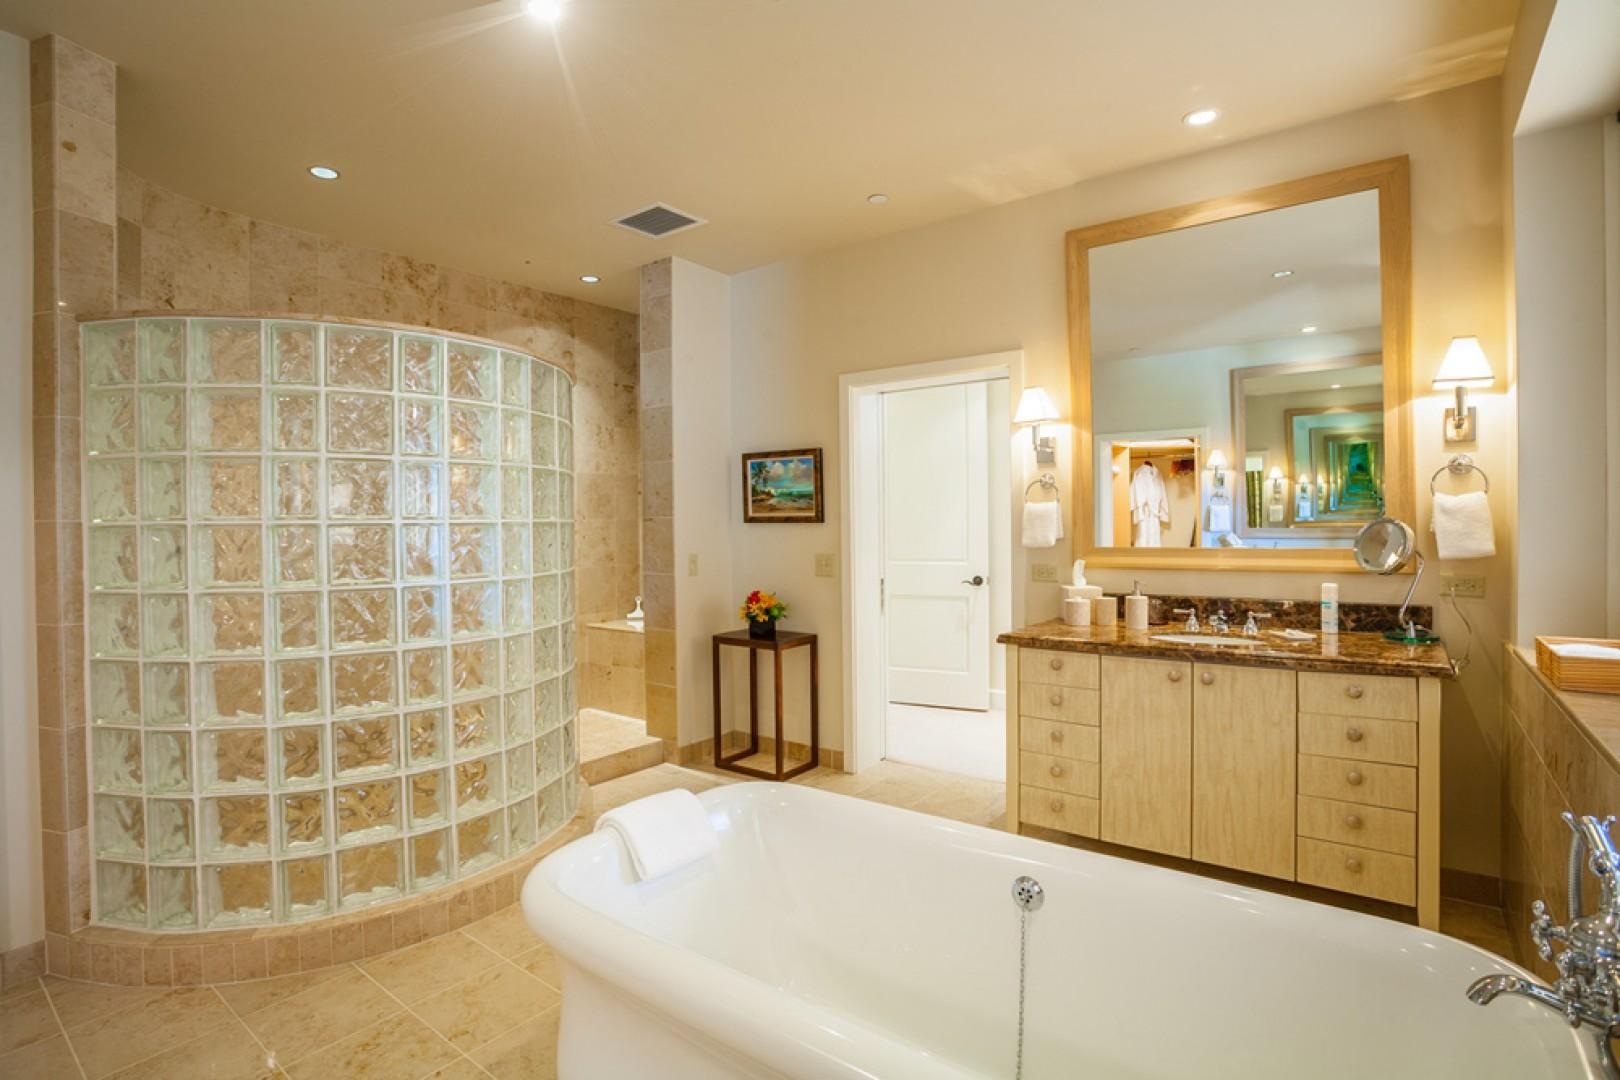 Blue Horizons K308 - Master Bedroom Bath with Twin Vanities, Private WC, Deep Tub, Glass Block Shower, Scale, Hair Dryer, Robes